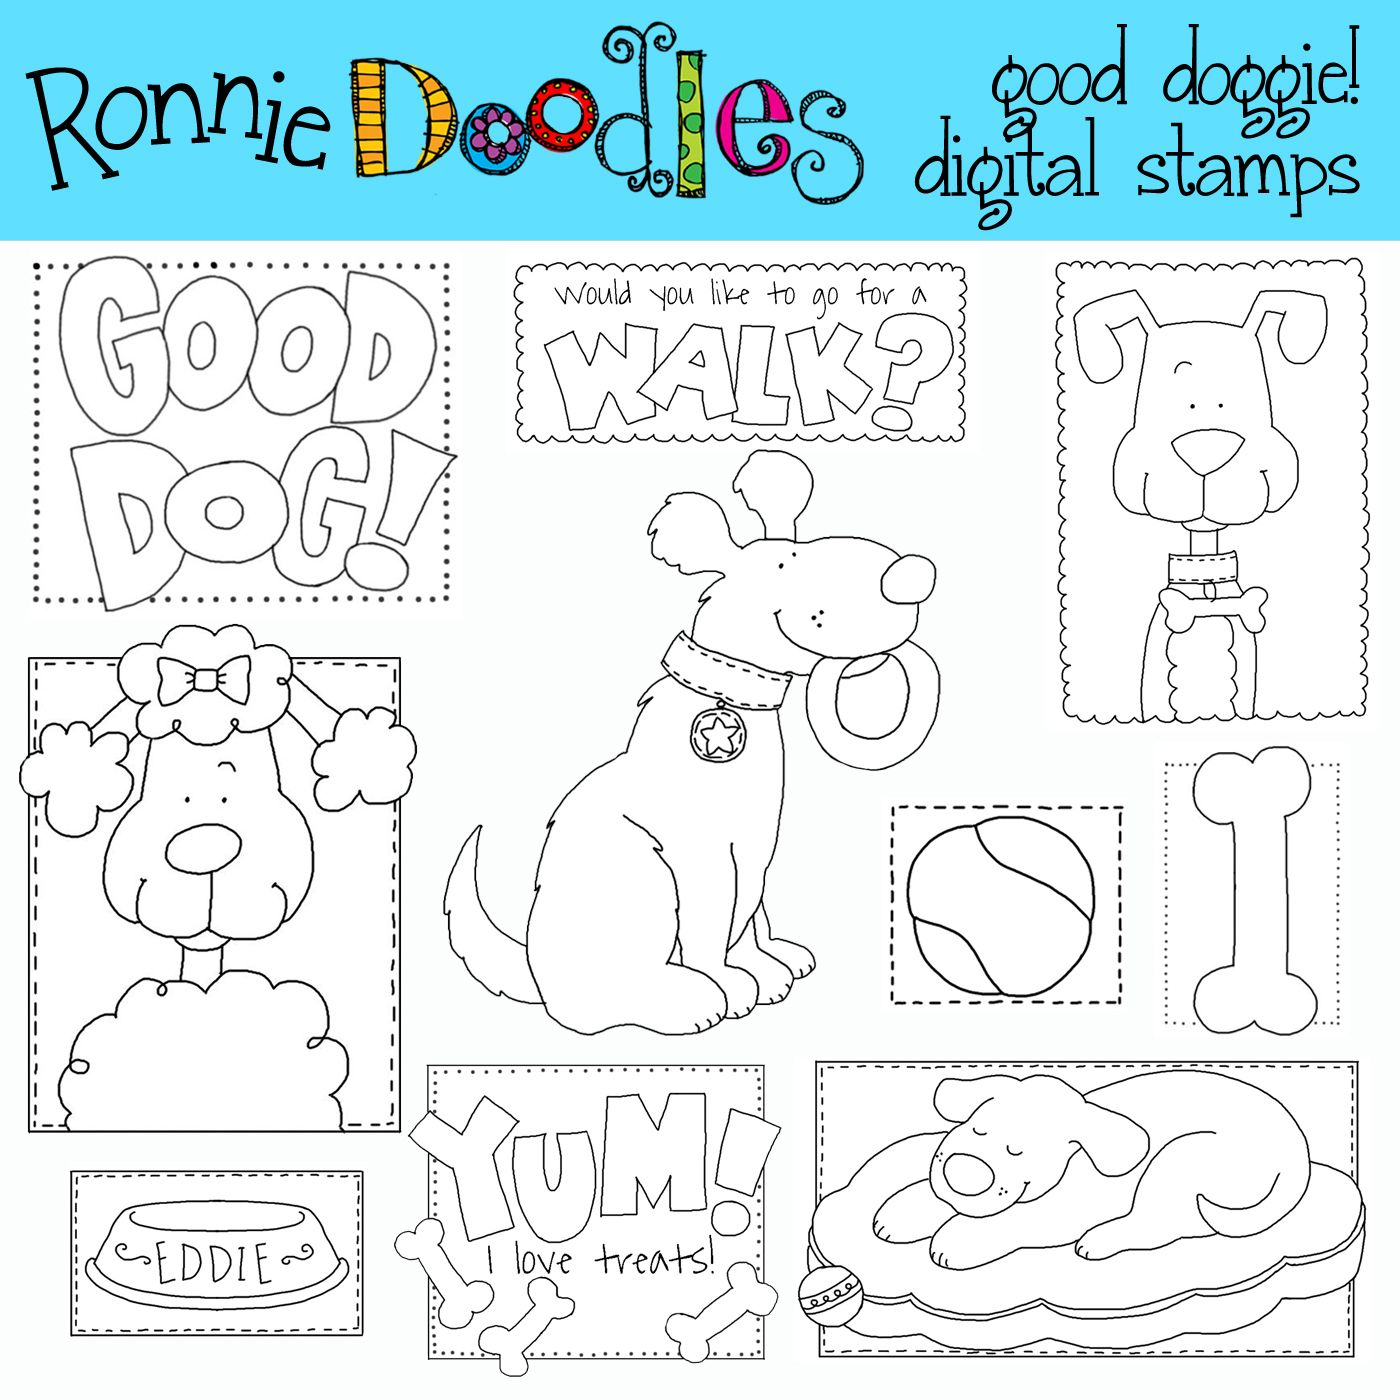 Good Dogs Digital Stamps